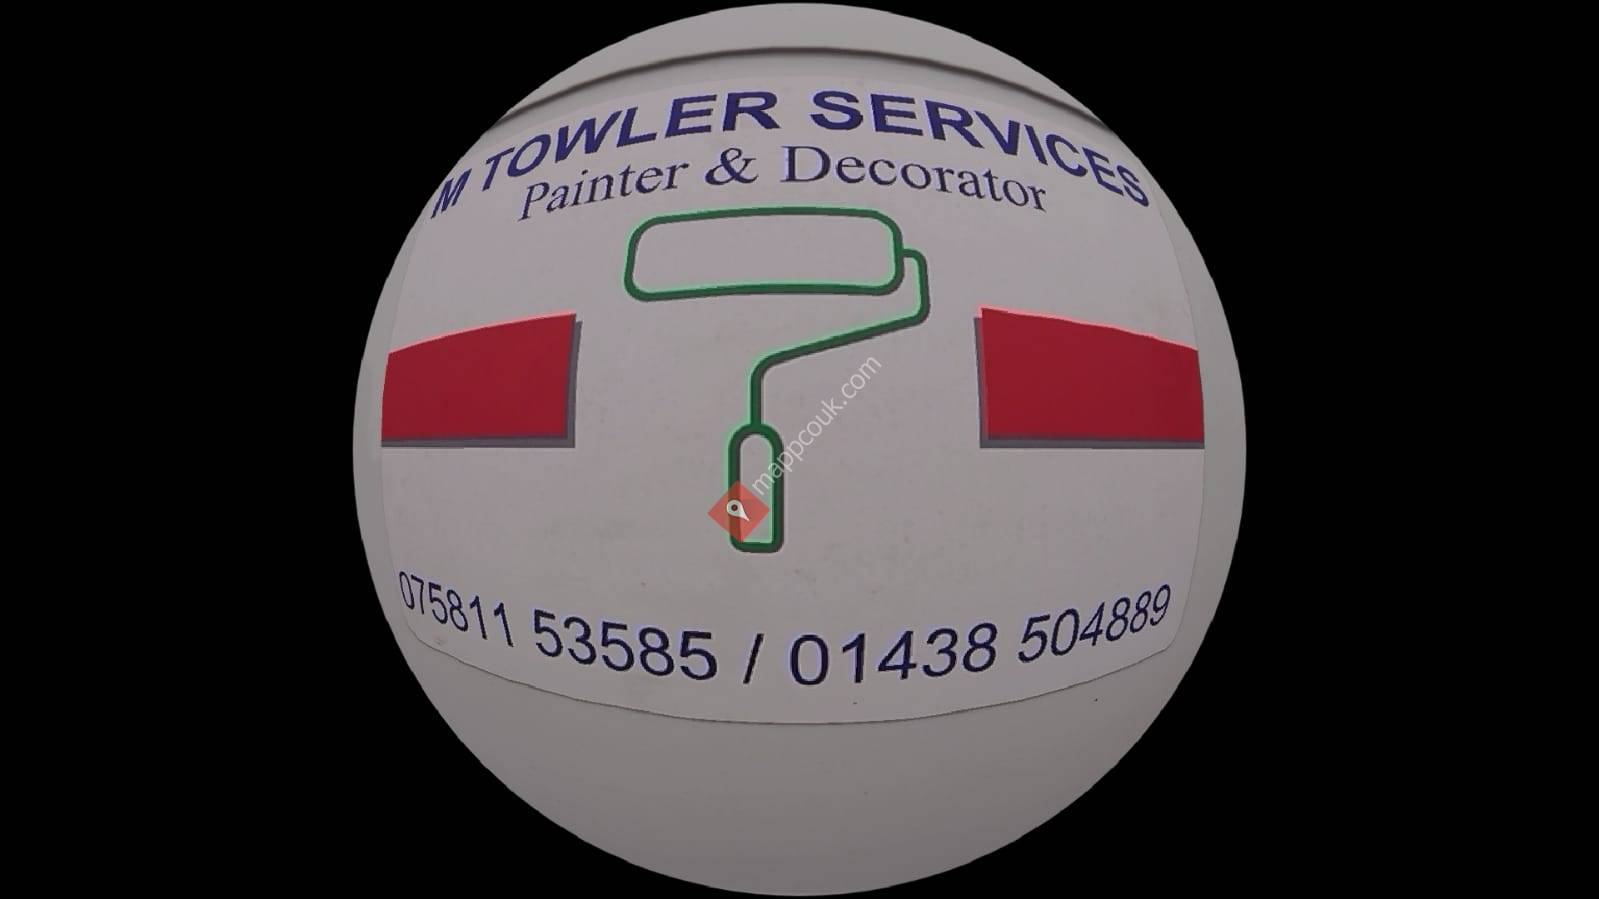 M Towler Services Painter and Decorator Luton